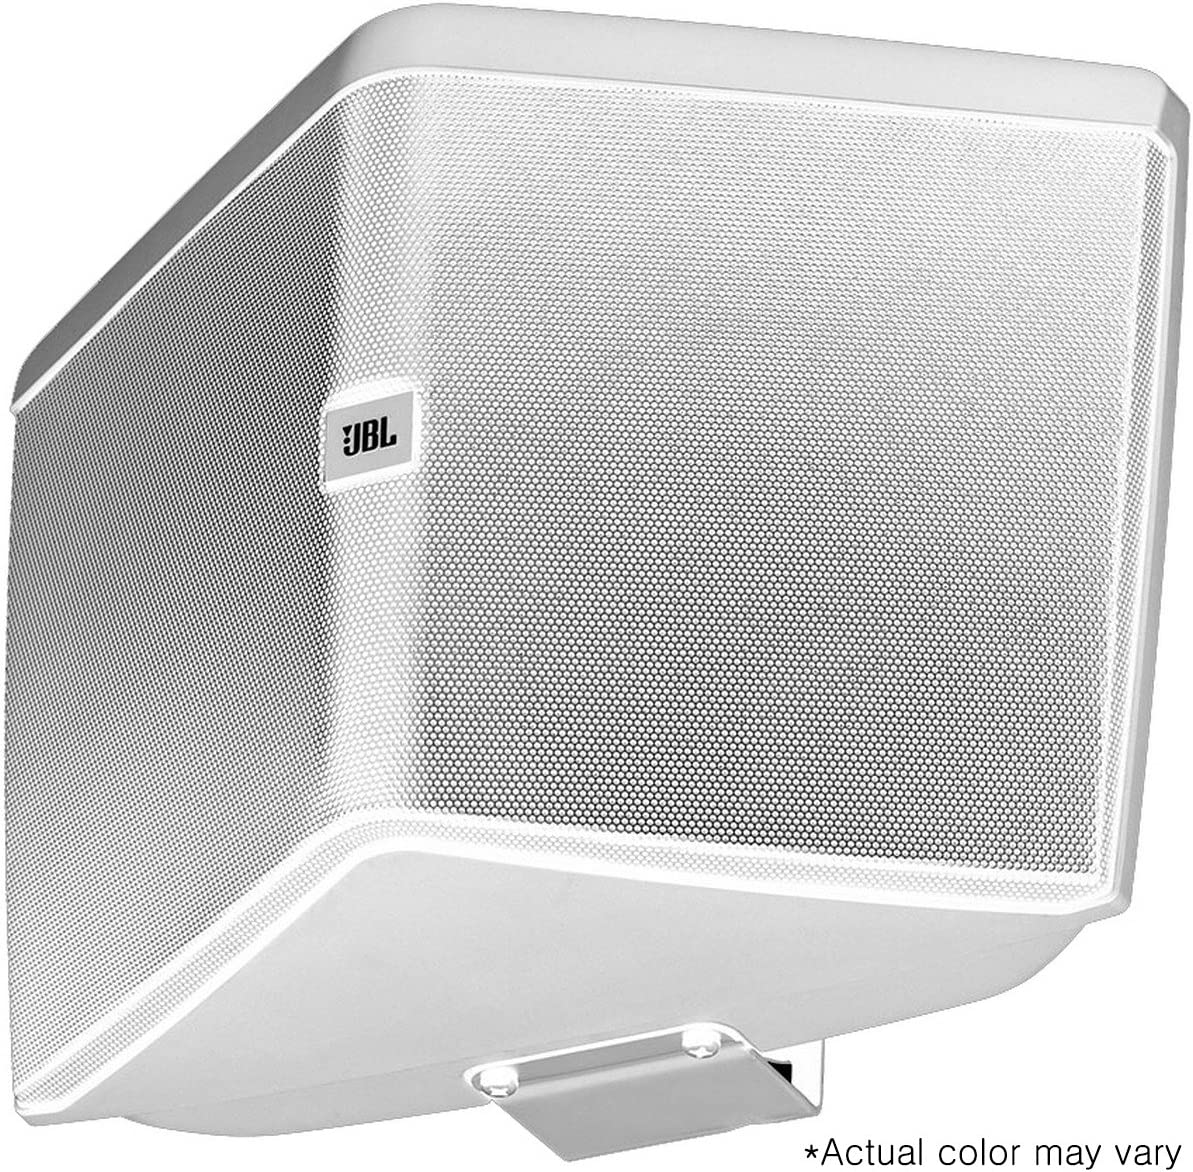 JBL Professional Control HST Wide-Coverage Speaker with 5.25-Inch LF, Dual Tweeters and HST Technology, White